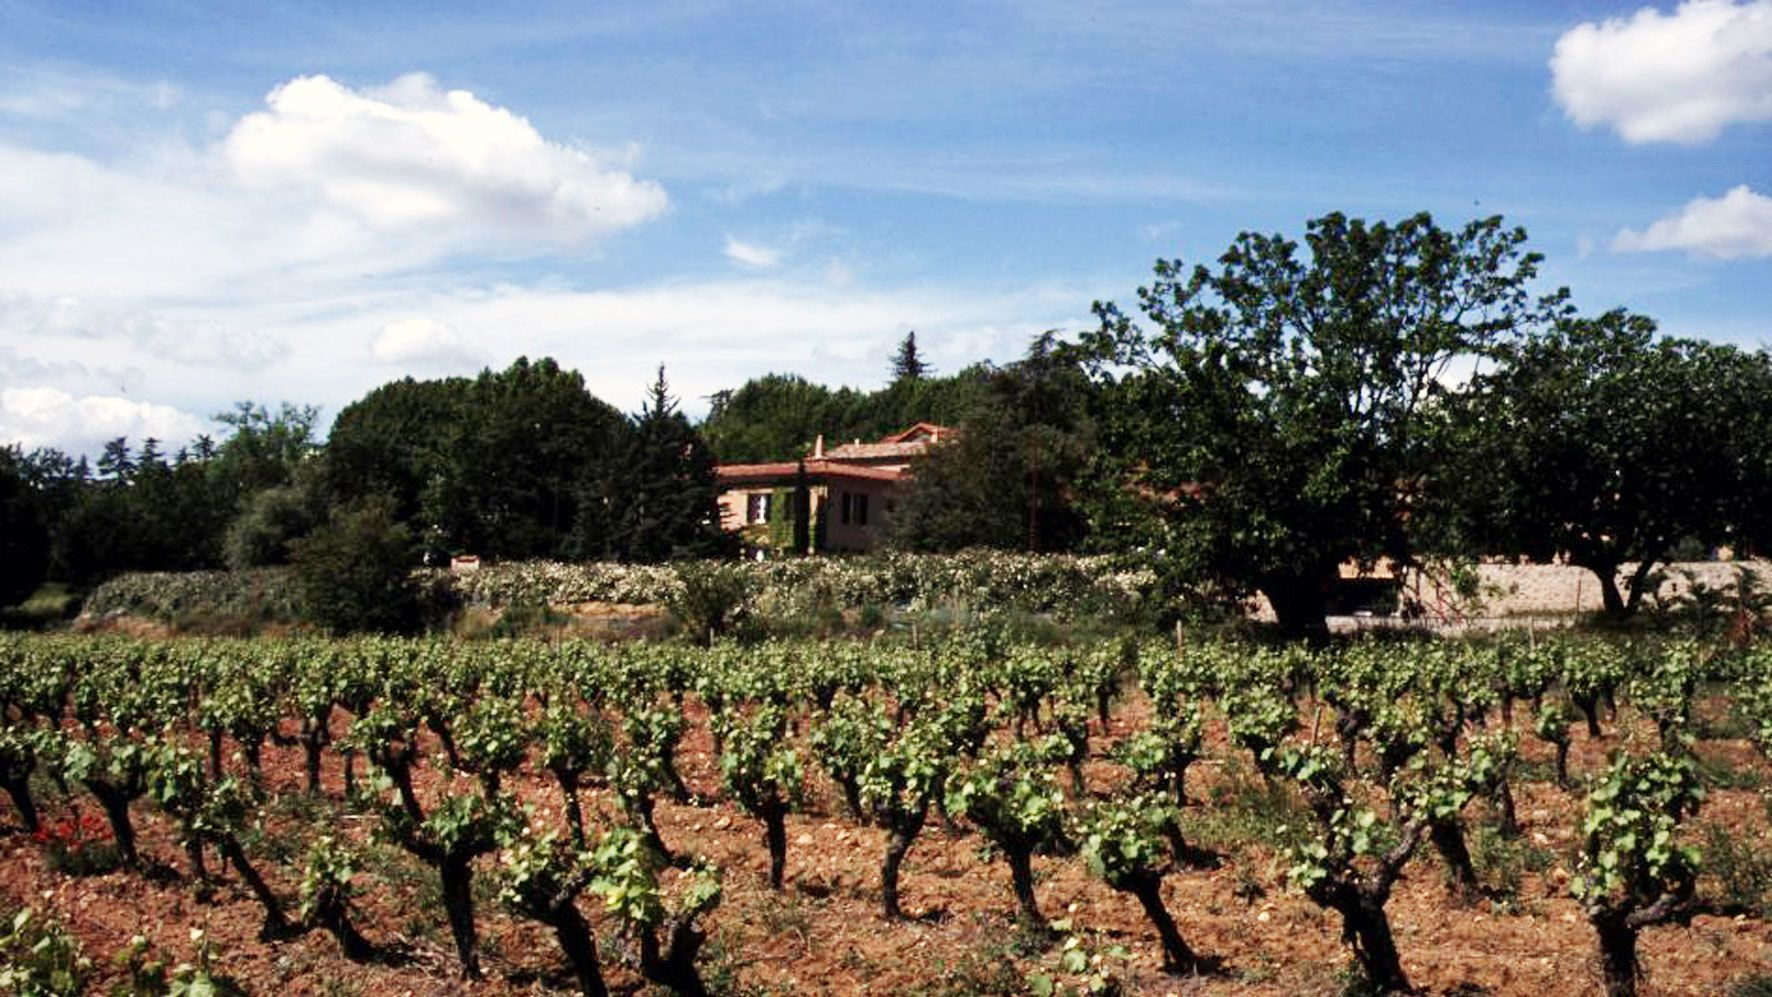 rows of grape vines in village of Bormes in Marseille